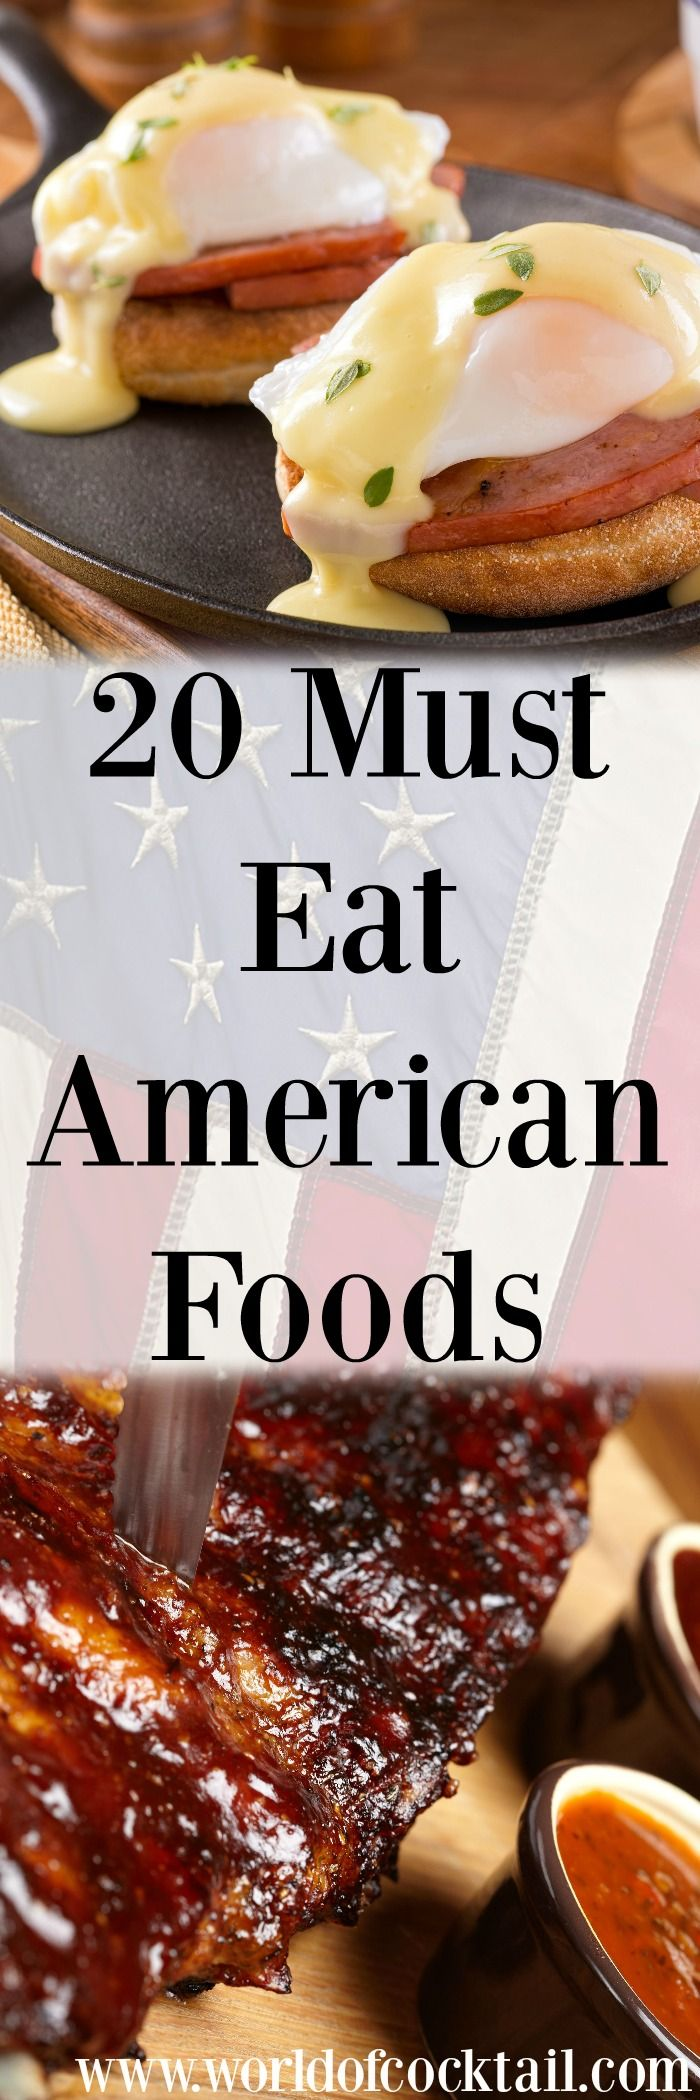 America is one of the largest countries in the world. Therefore we can expect from this, it also hides a lot of flavor and all sorts of goodies. Check out... [Continue Reading]